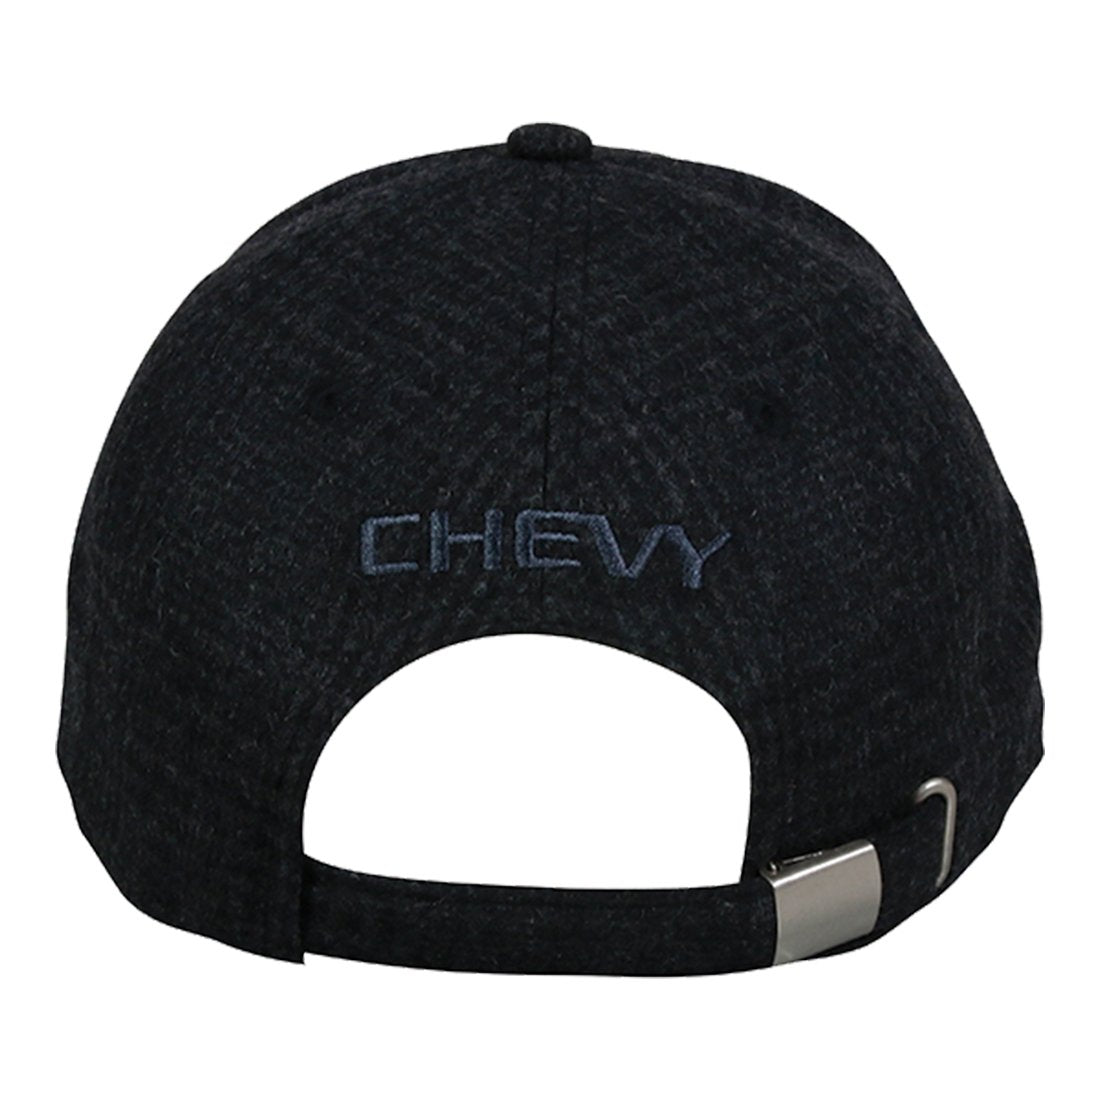 9ca5abbde Auto Elite Mens Chevy Chevrolet Wool Blend Hat (Black Plaid) – Shop ...